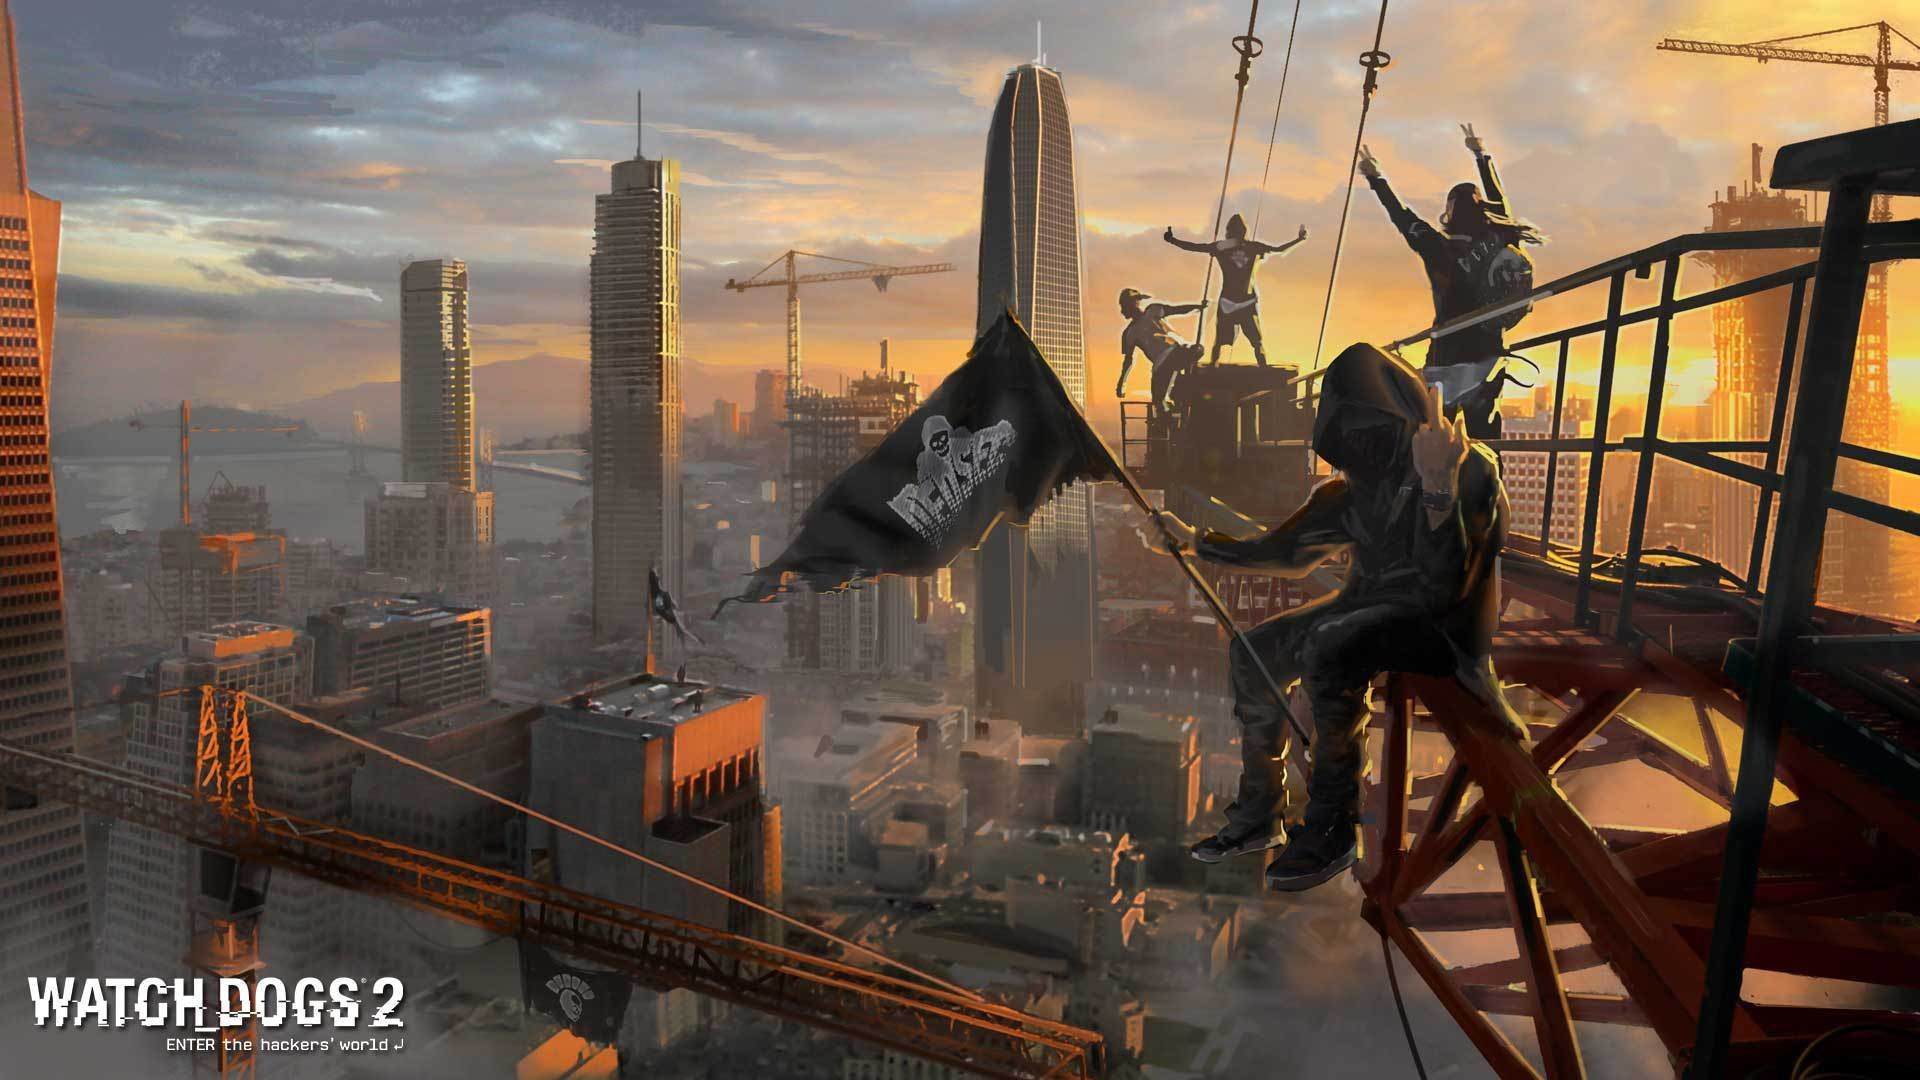 Watch Dogs 2 Wallpapers 1920x1080 Full Hd 1080p Desktop Backgrounds